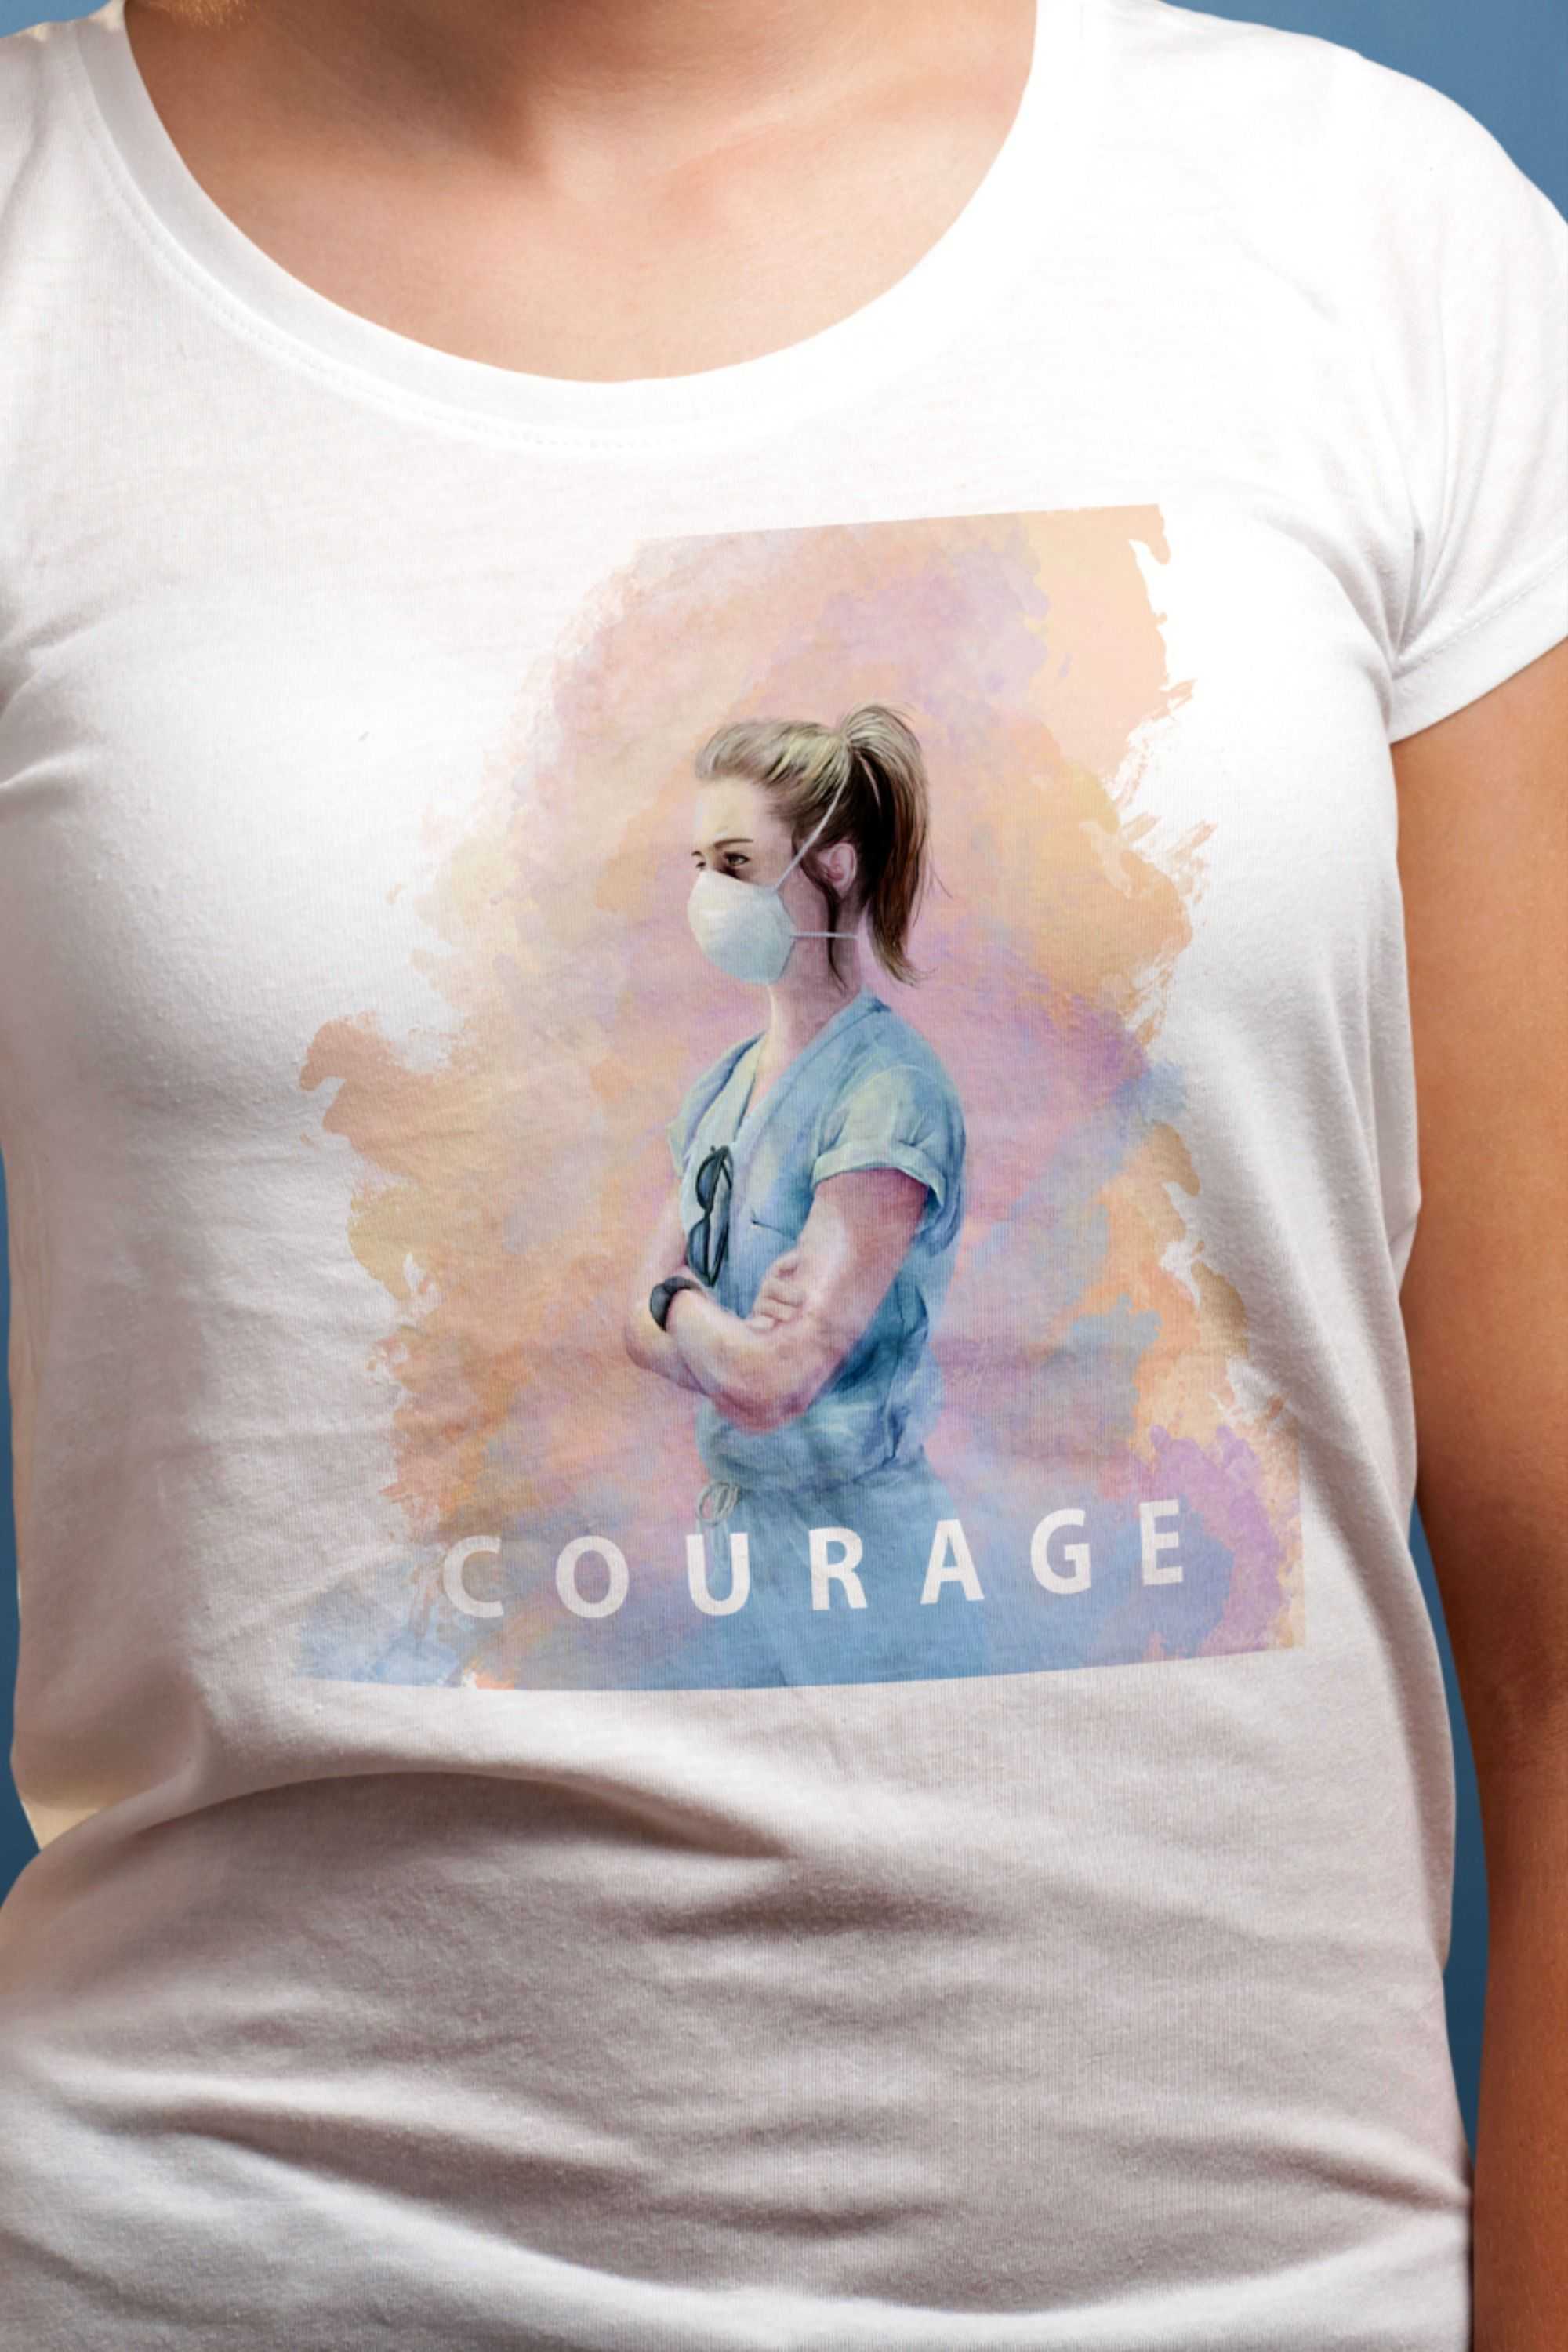 Celebrate the courage of healthcare workers on the